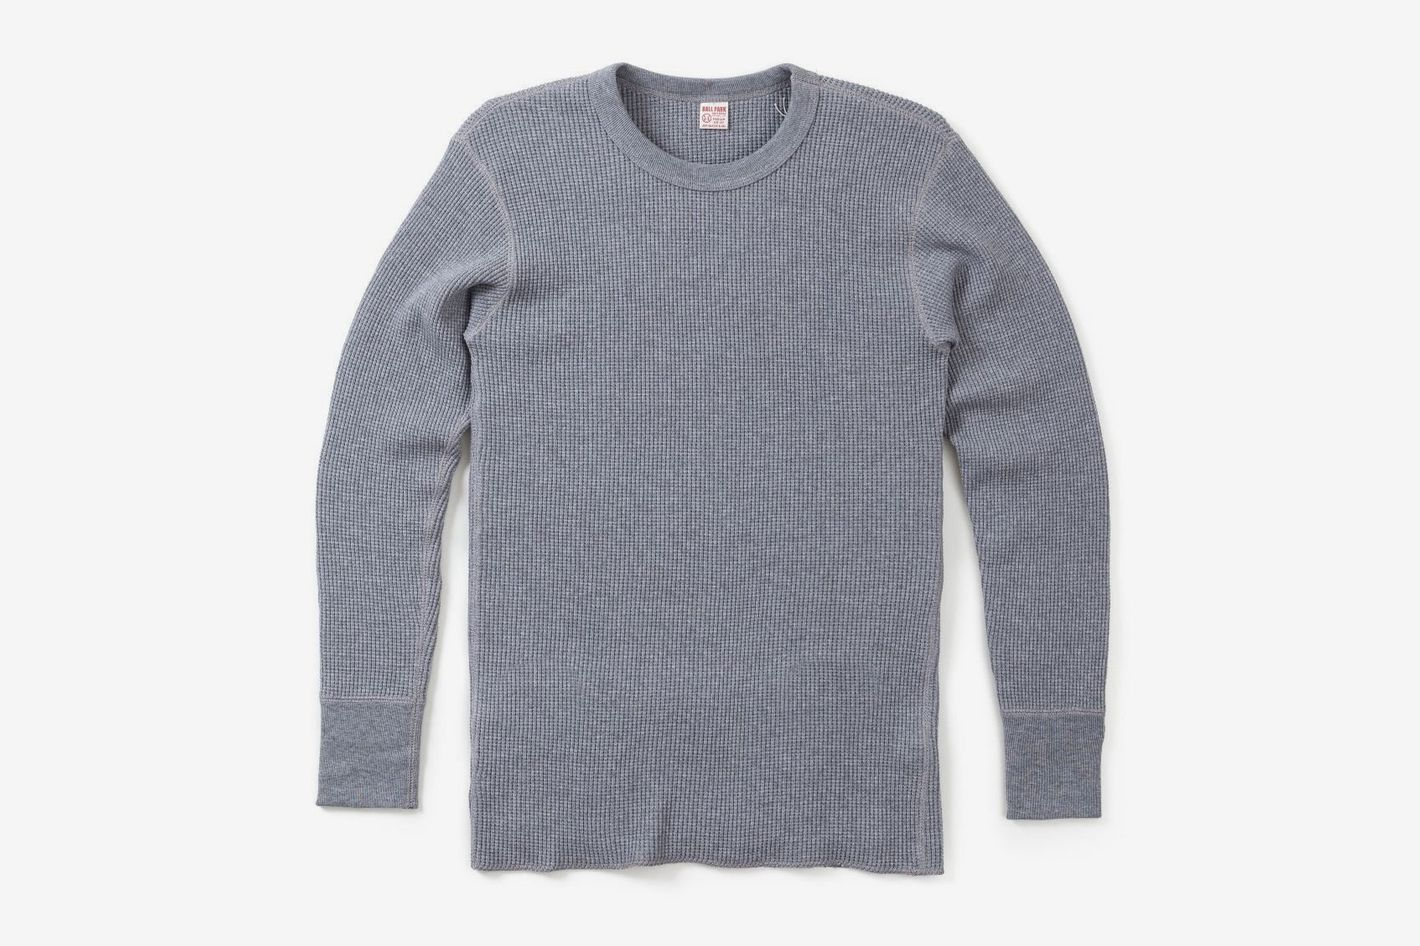 The Real McCoy's — Joe McCoy Waffle Knit Thermal Shirt, Grey